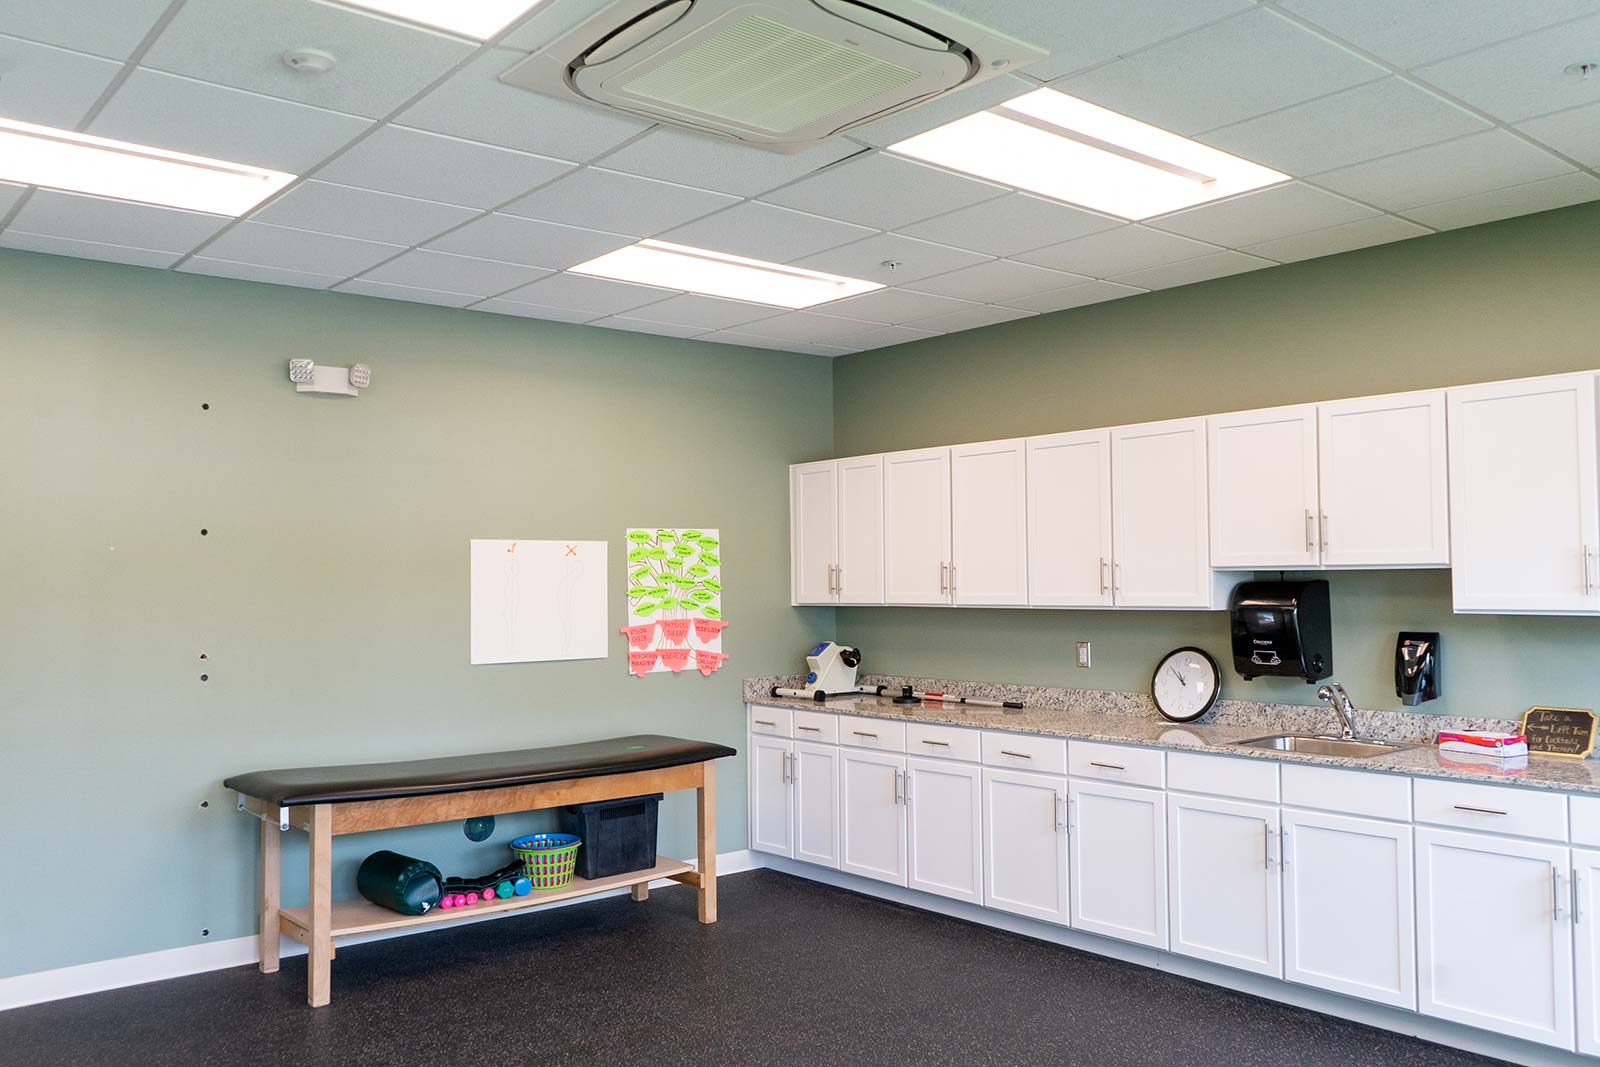 Therapy room at The Arbors of Gulf Breeze in Gulf Breeze, FL